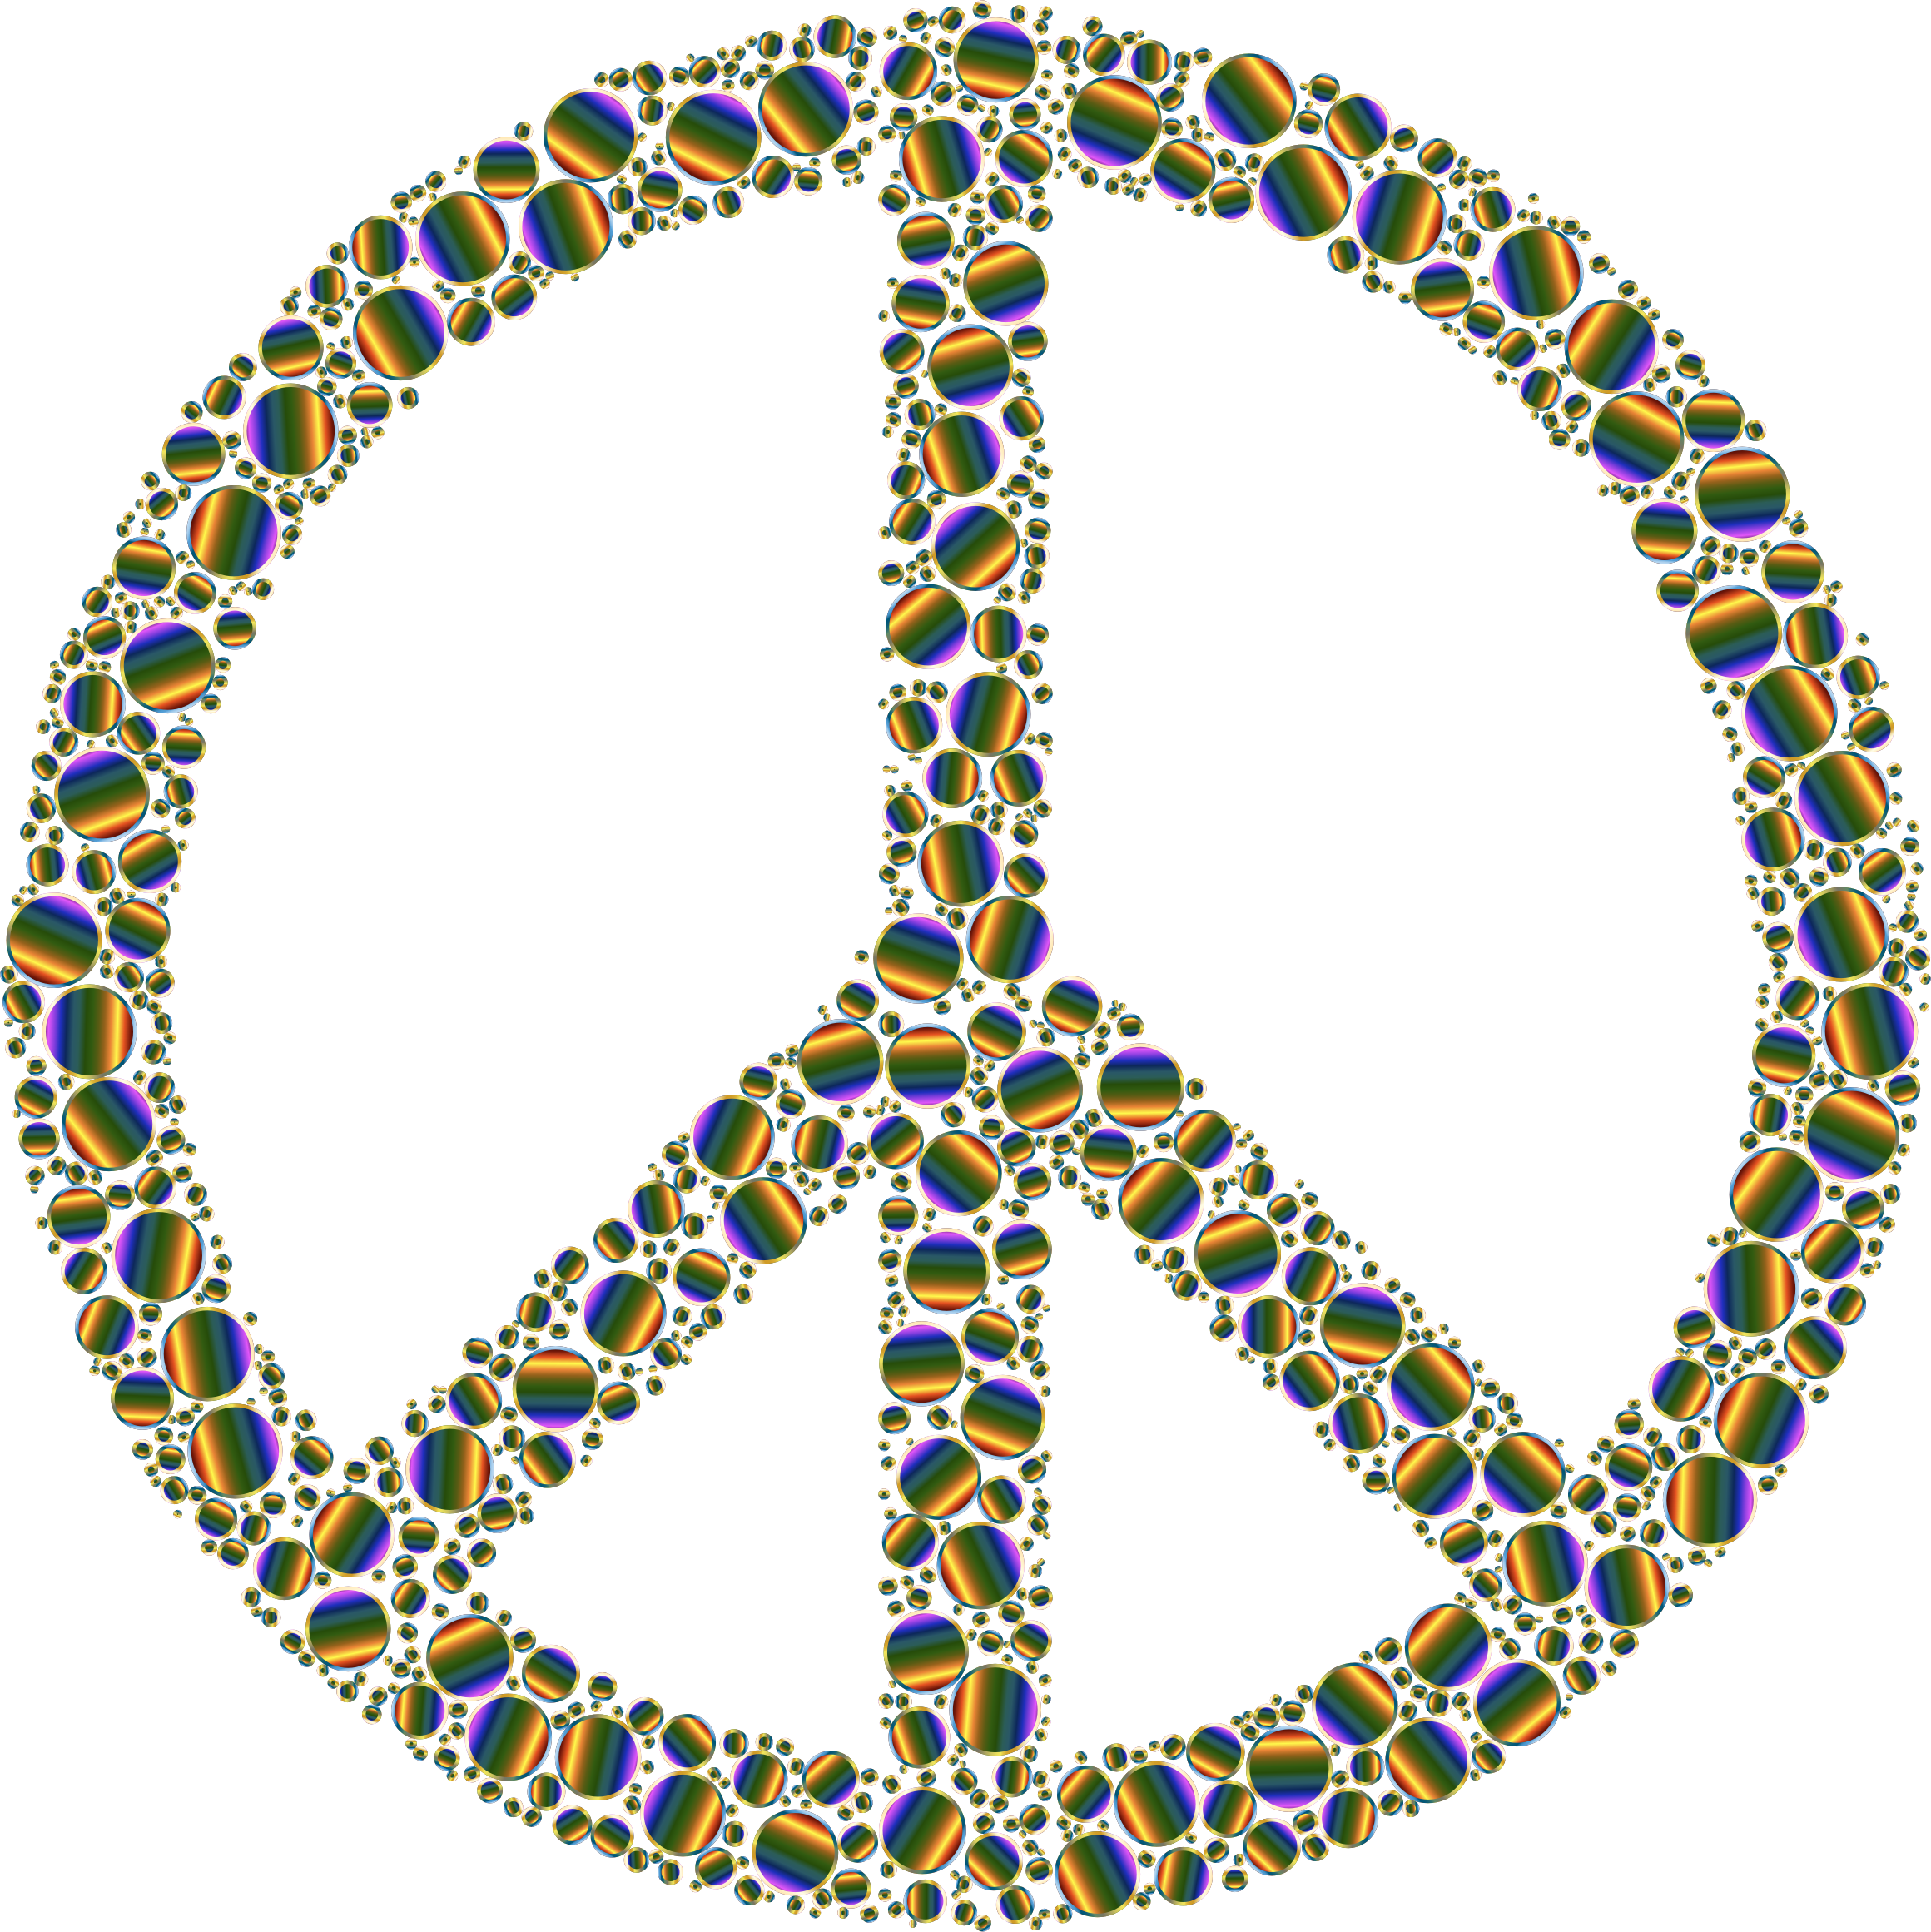 Colorful Circles Peace Sign 17 Without Background by GDJ